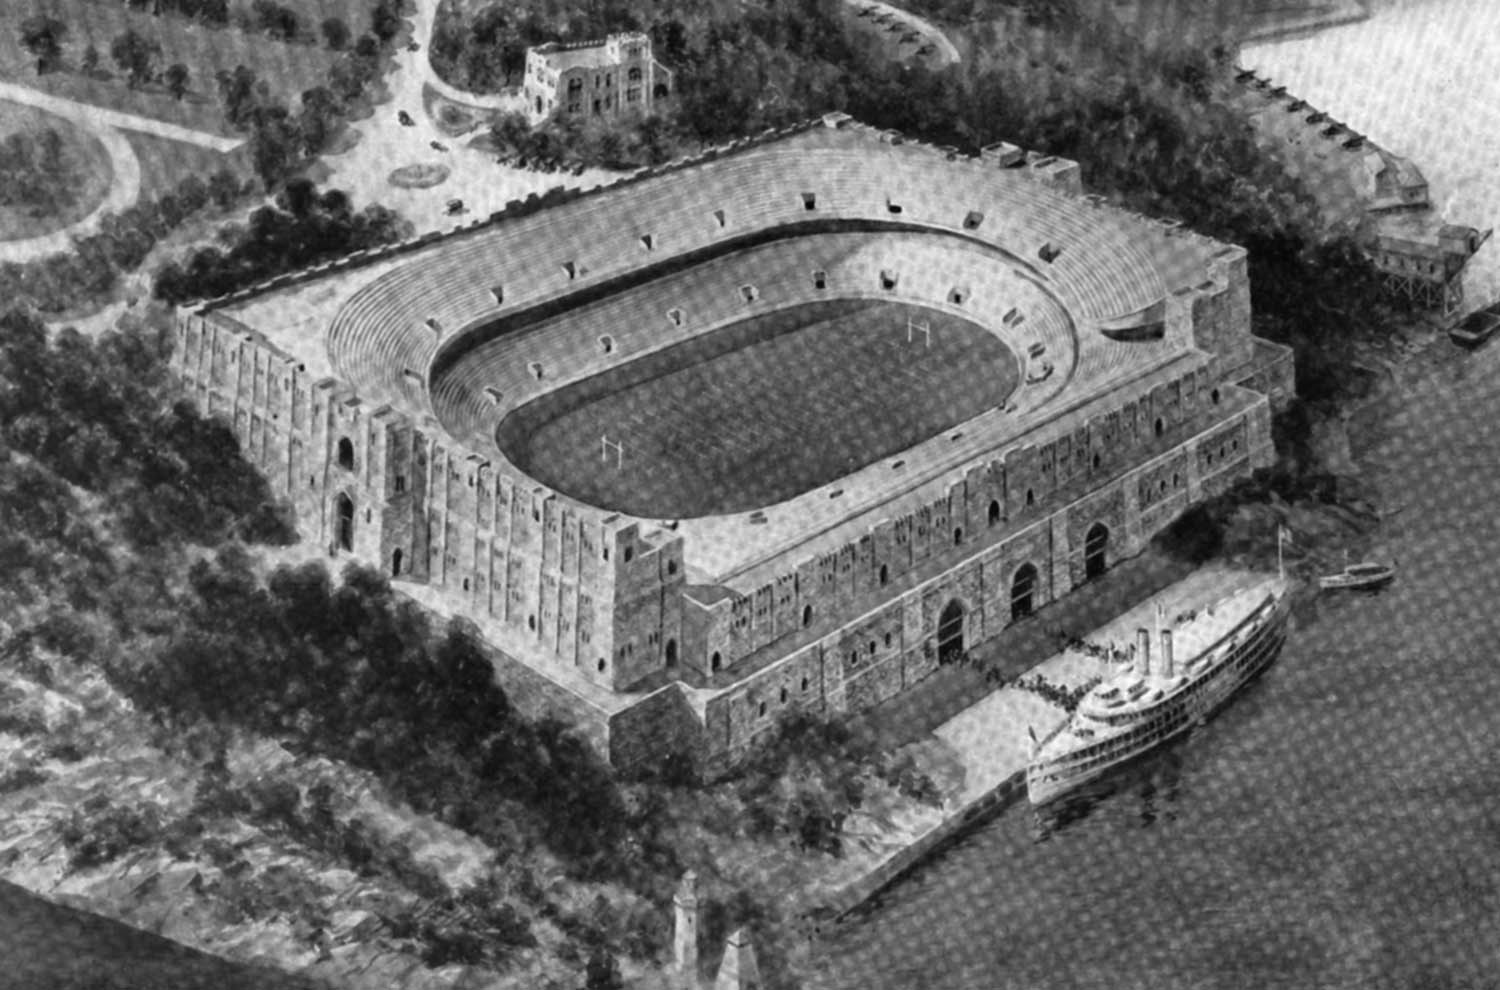 A proposed football stadium on Trophy Point, as shown in a 1922 Infantry Journal article.